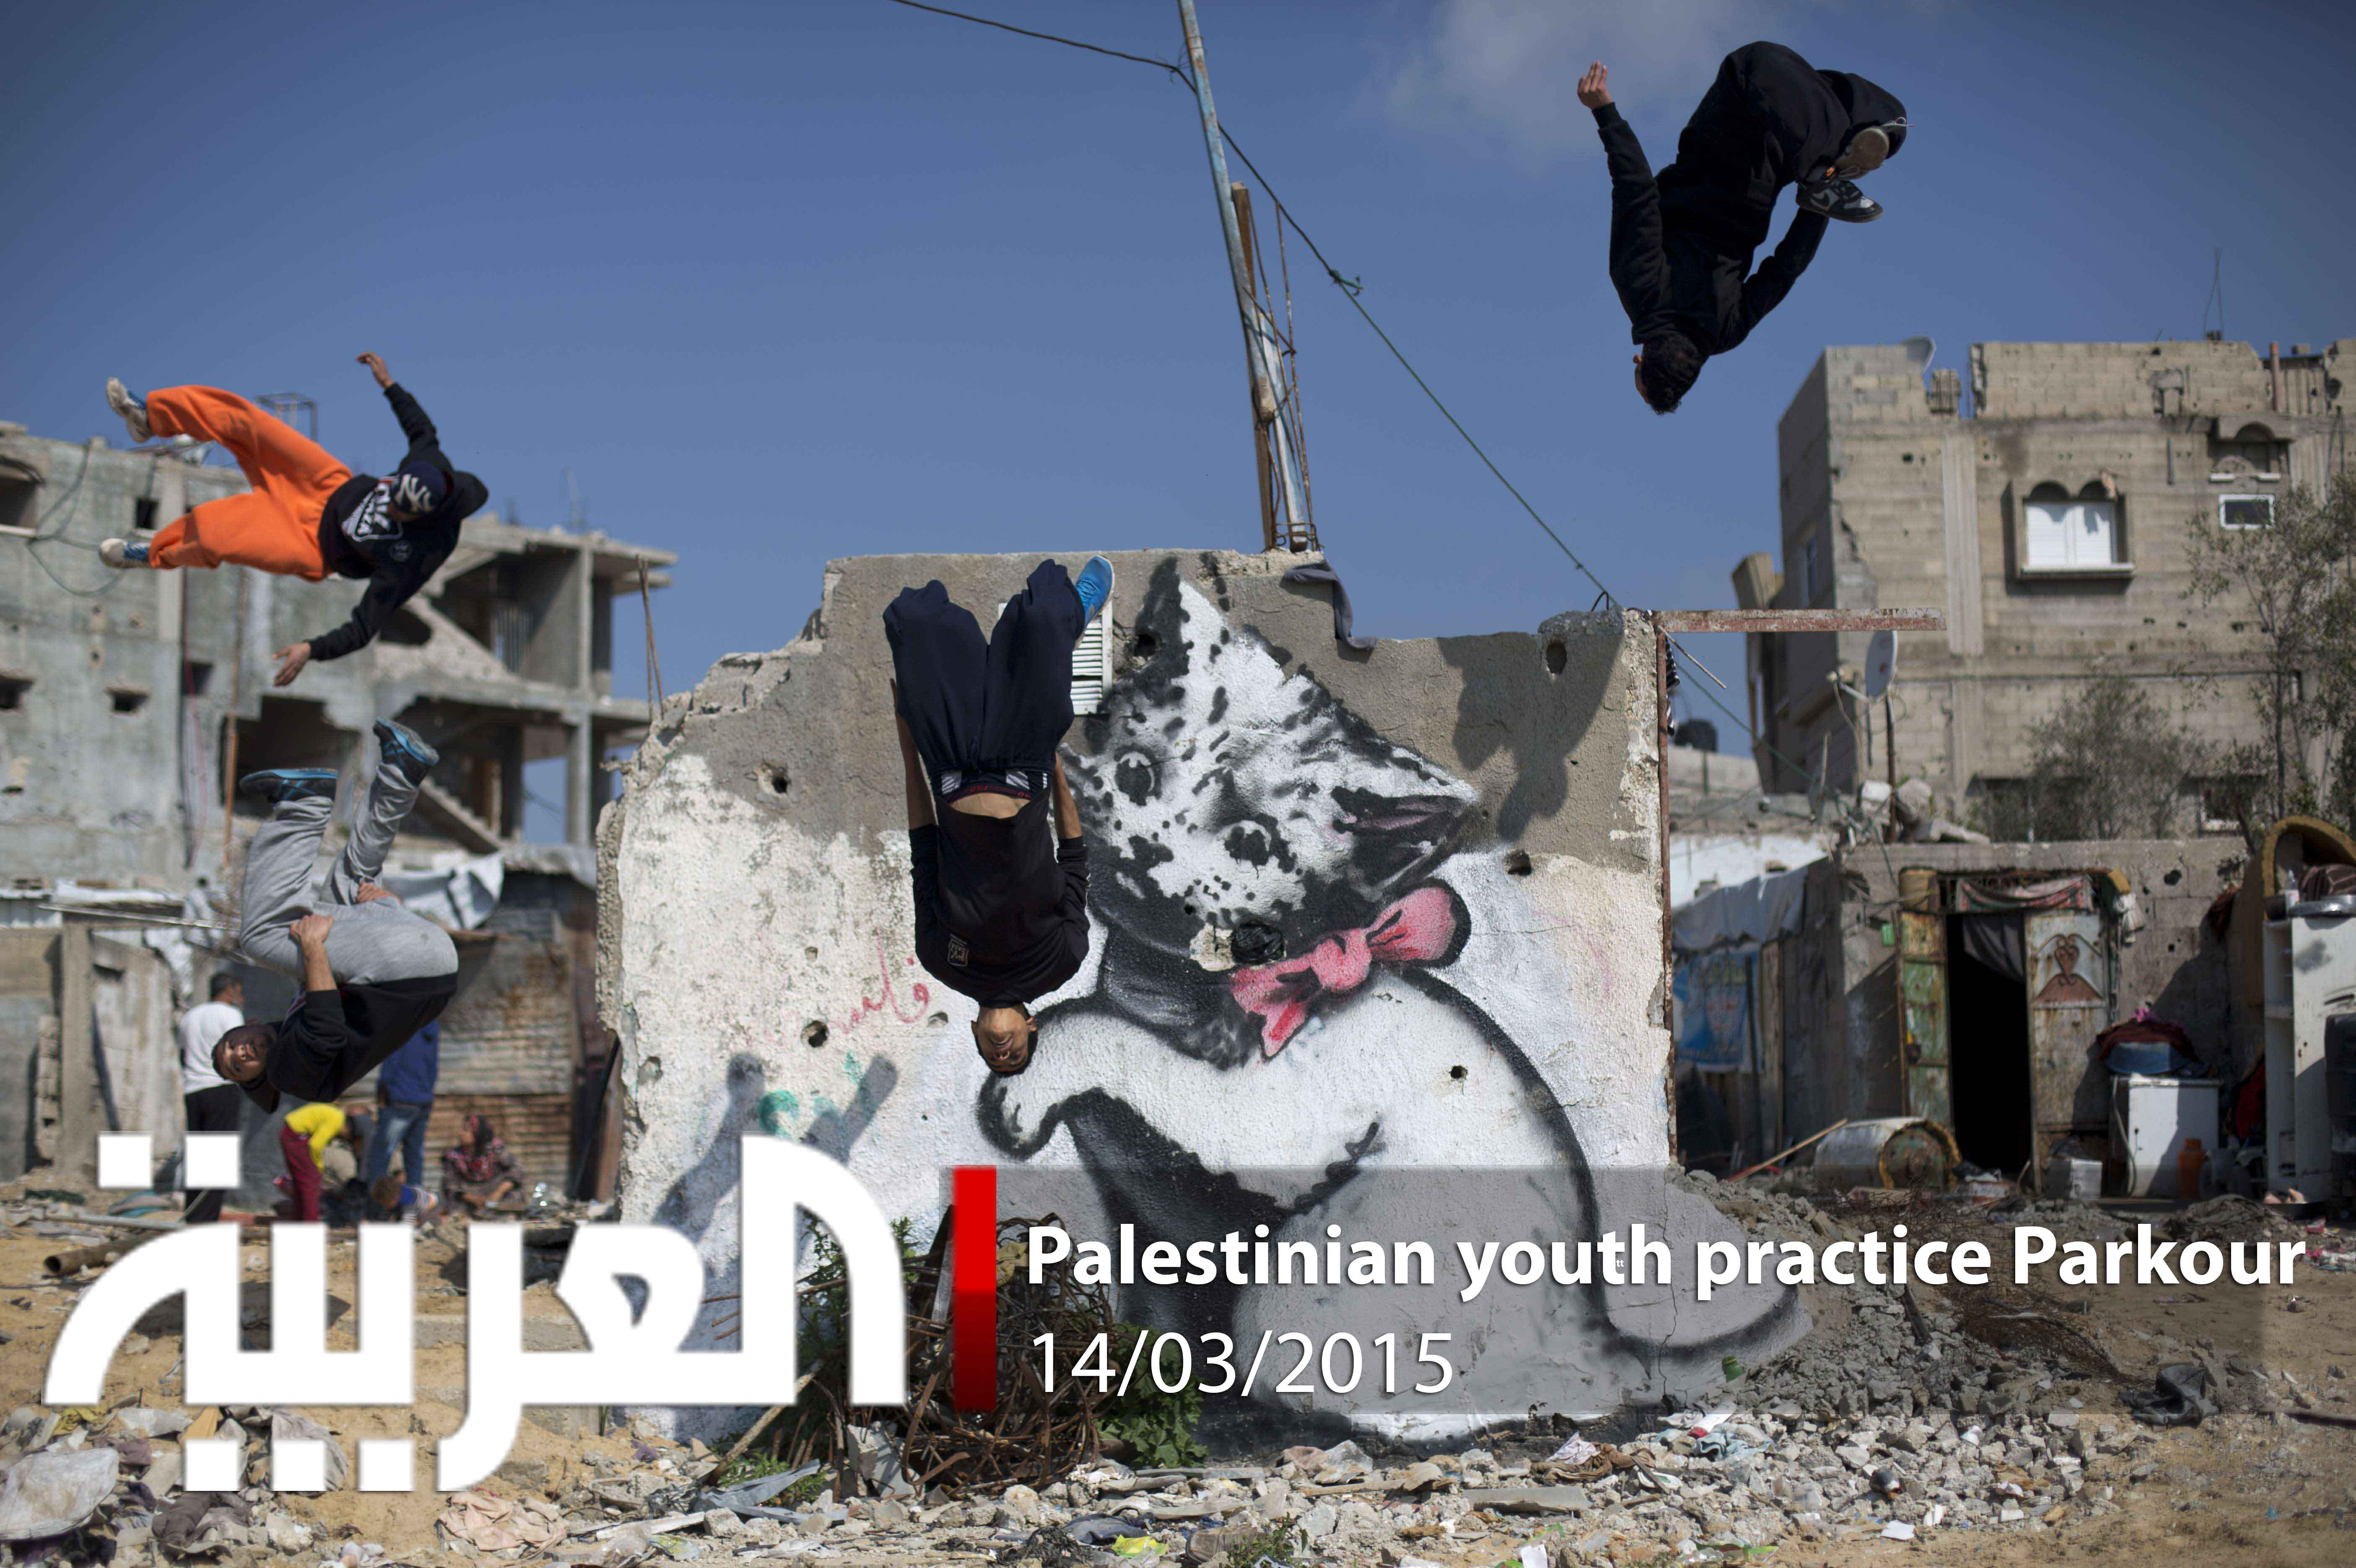 Palestinian youth practice Parkour amid Gaza ruins